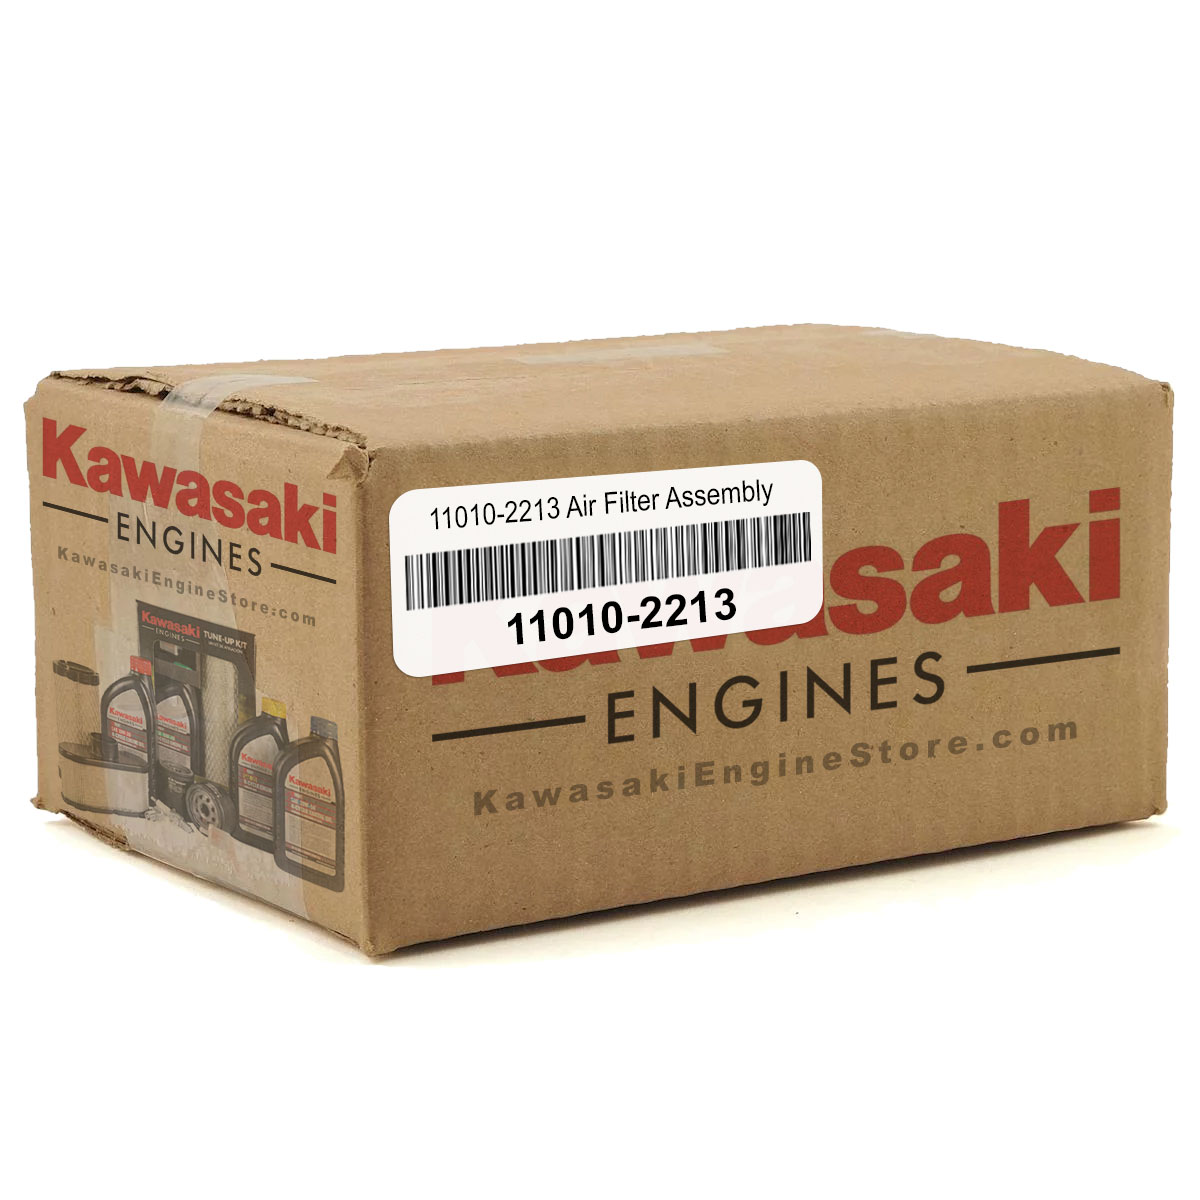 Kawasaki 11010-2213 Air Filter Assembly